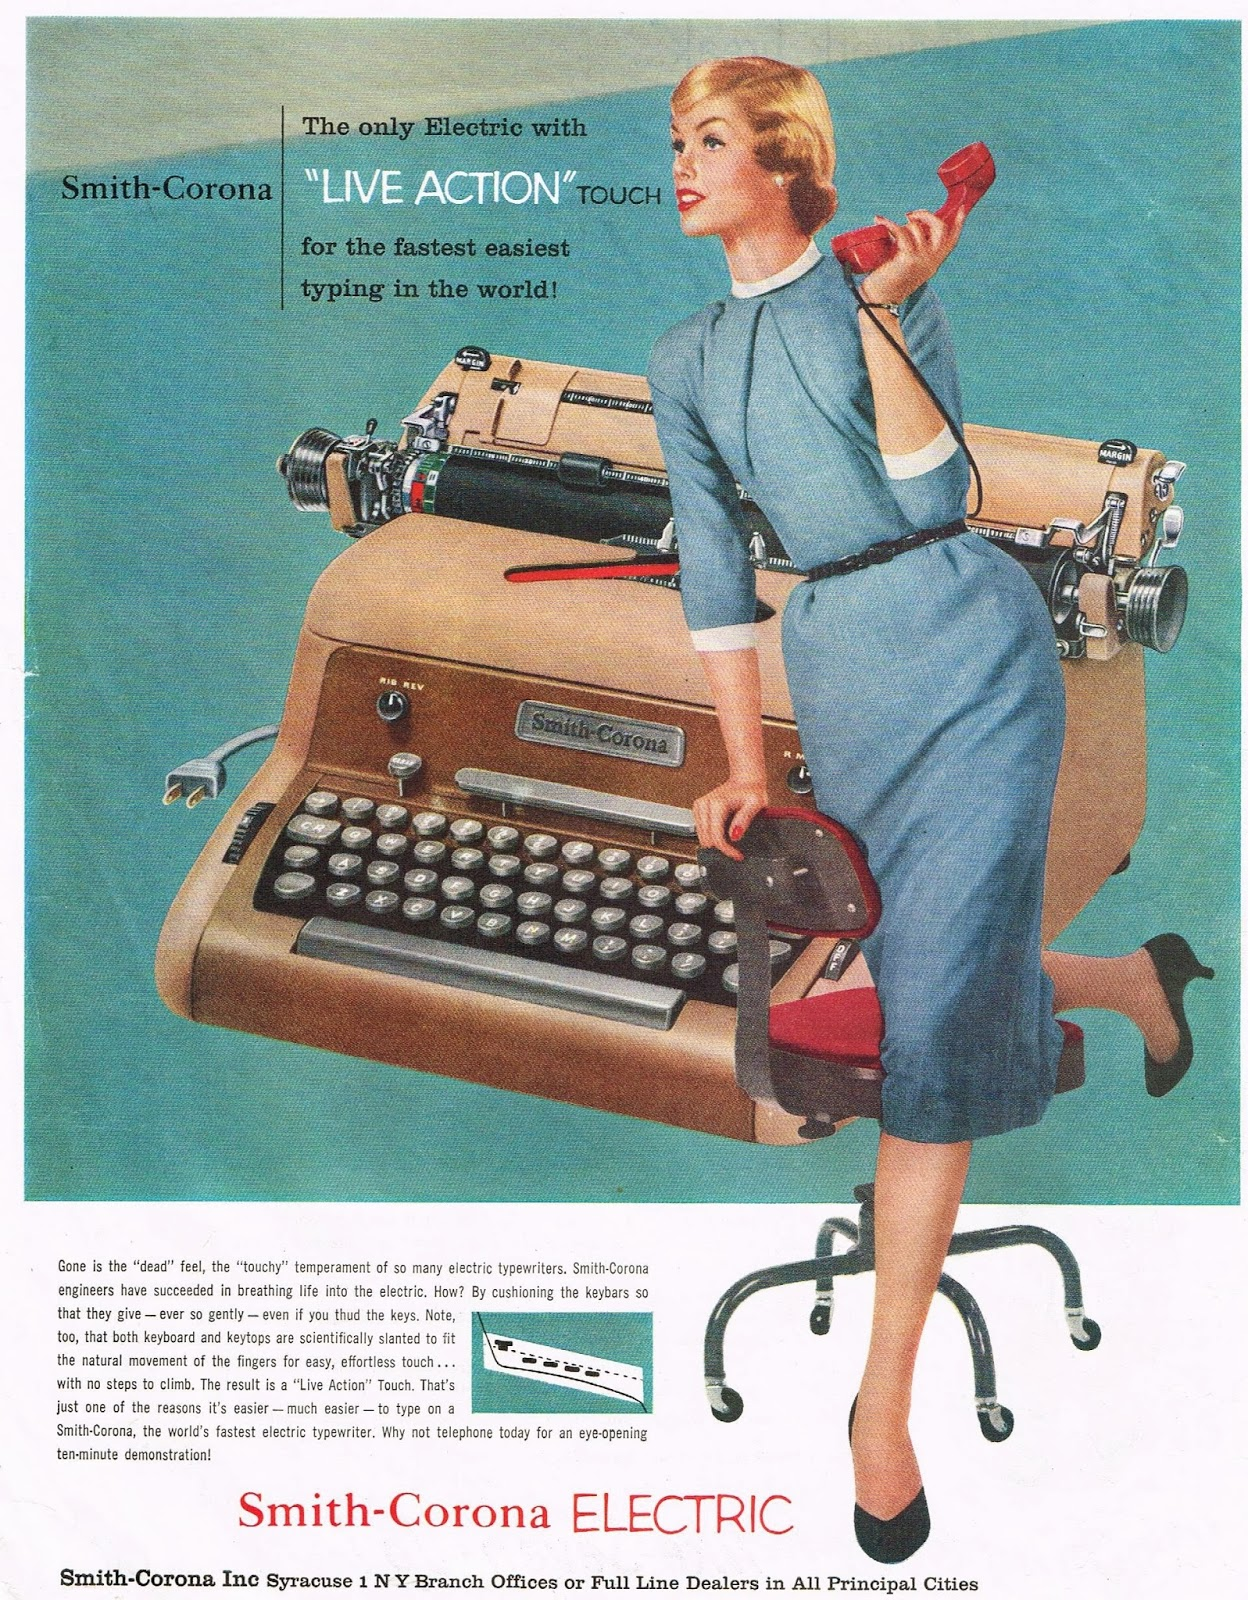 Neyk Personal Submarine 06 12 2017 furthermore Chinese typewriter besides Mechanical Typewriter The Okinawan Connection in addition The Best Essay Ever furthermore 100 Years Of Workplace Technology Infographic. on electric typewriter